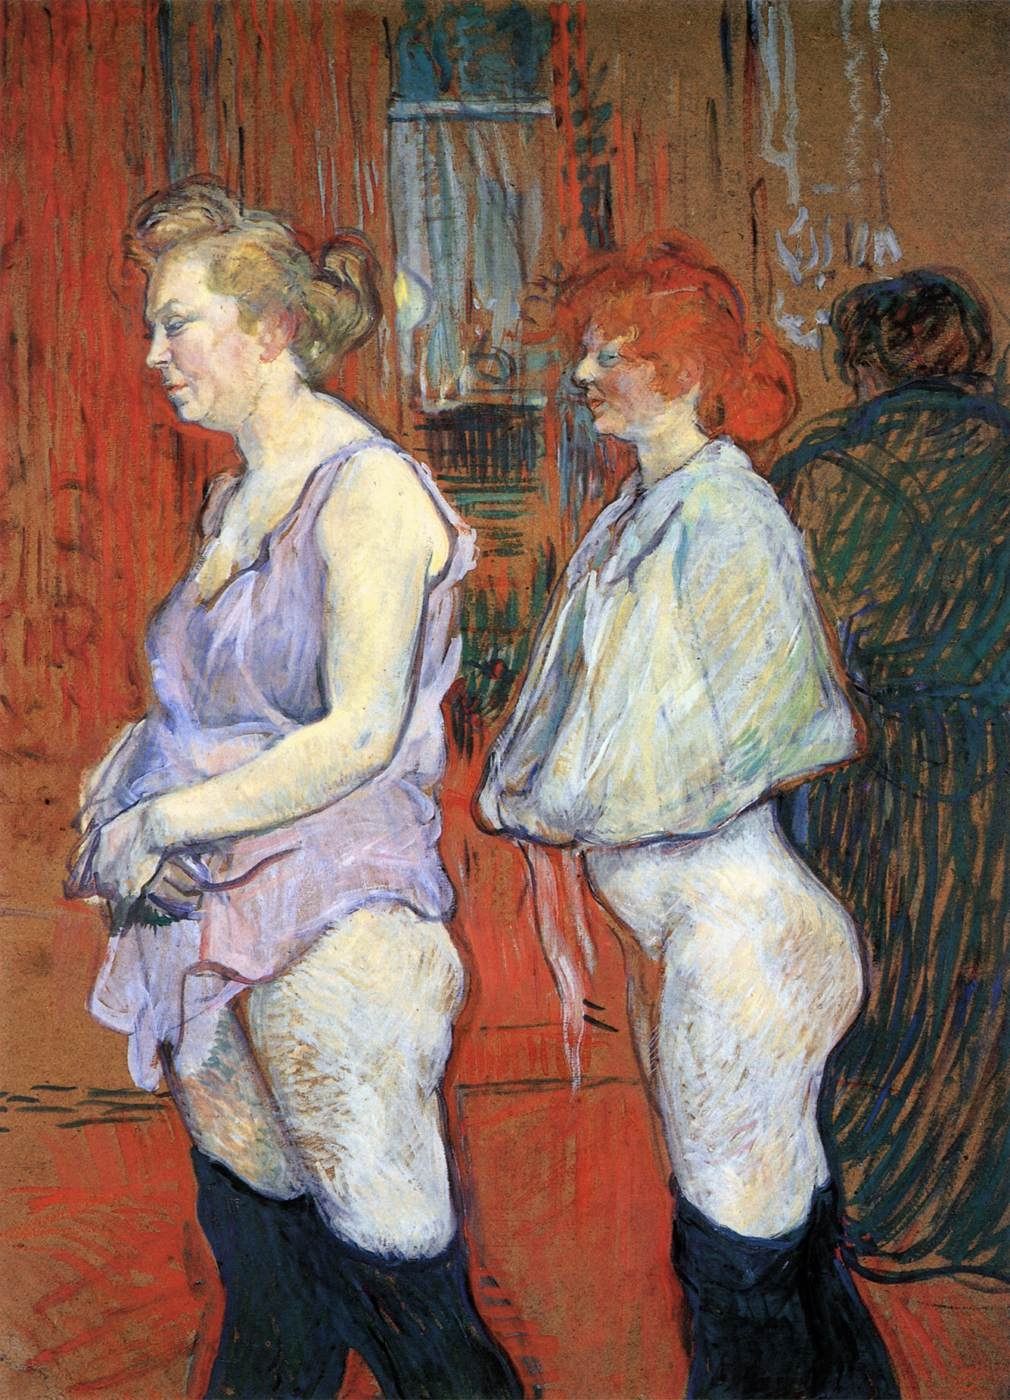 Henri de Toulouse-Lautrec,  Medical Examination, Rue des Moulins  (1894).